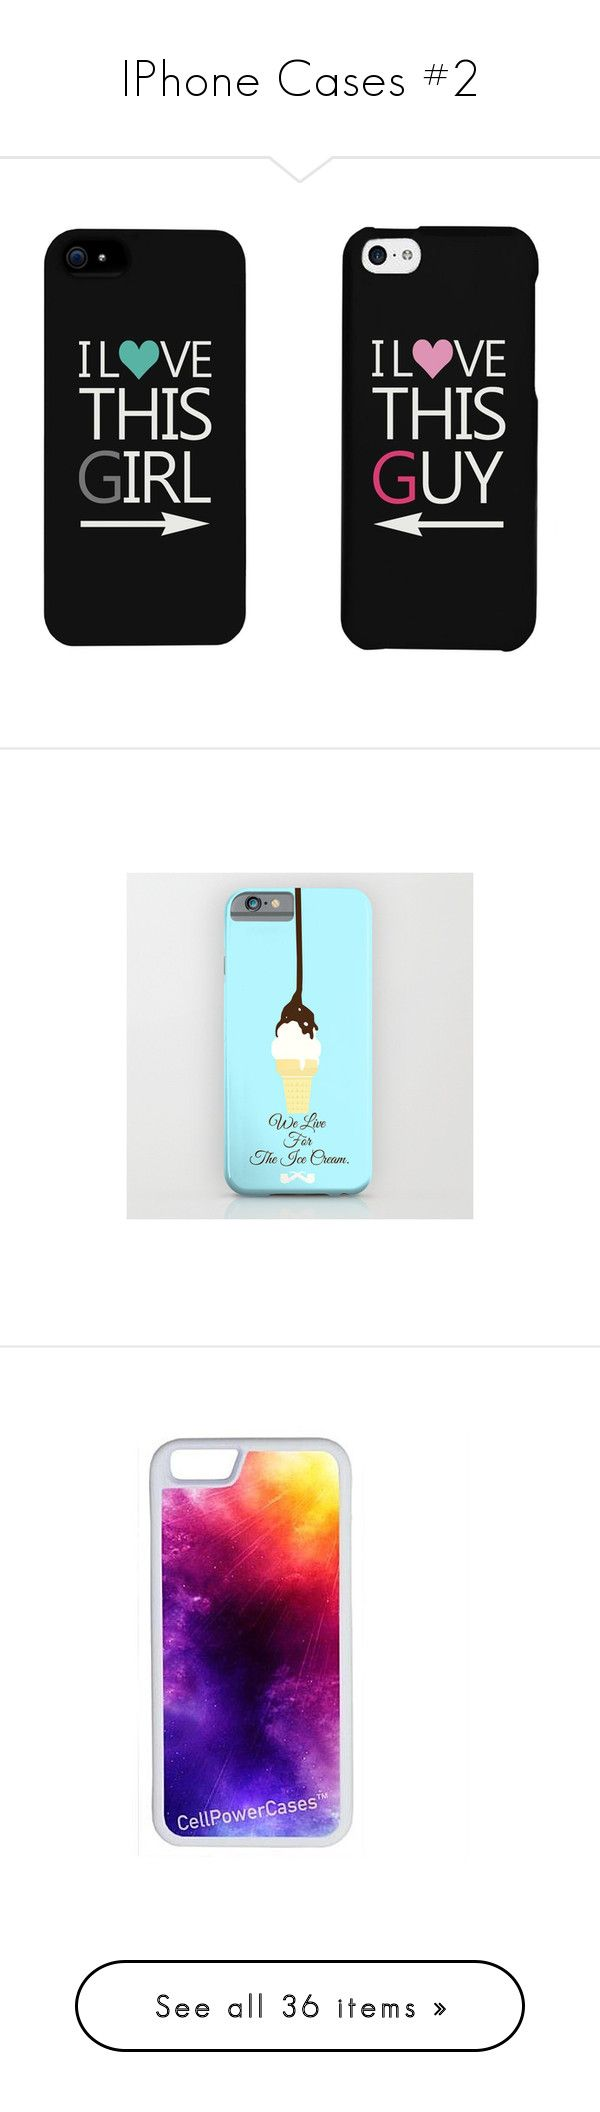 """""""IPhone Cases #2"""" by king-alysa ❤ liked on Polyvore featuring accessories, tech accessories, phone cases, cases, electronics, lg smartphone, iphone smartphone, galaxy smartphone, white and phone"""